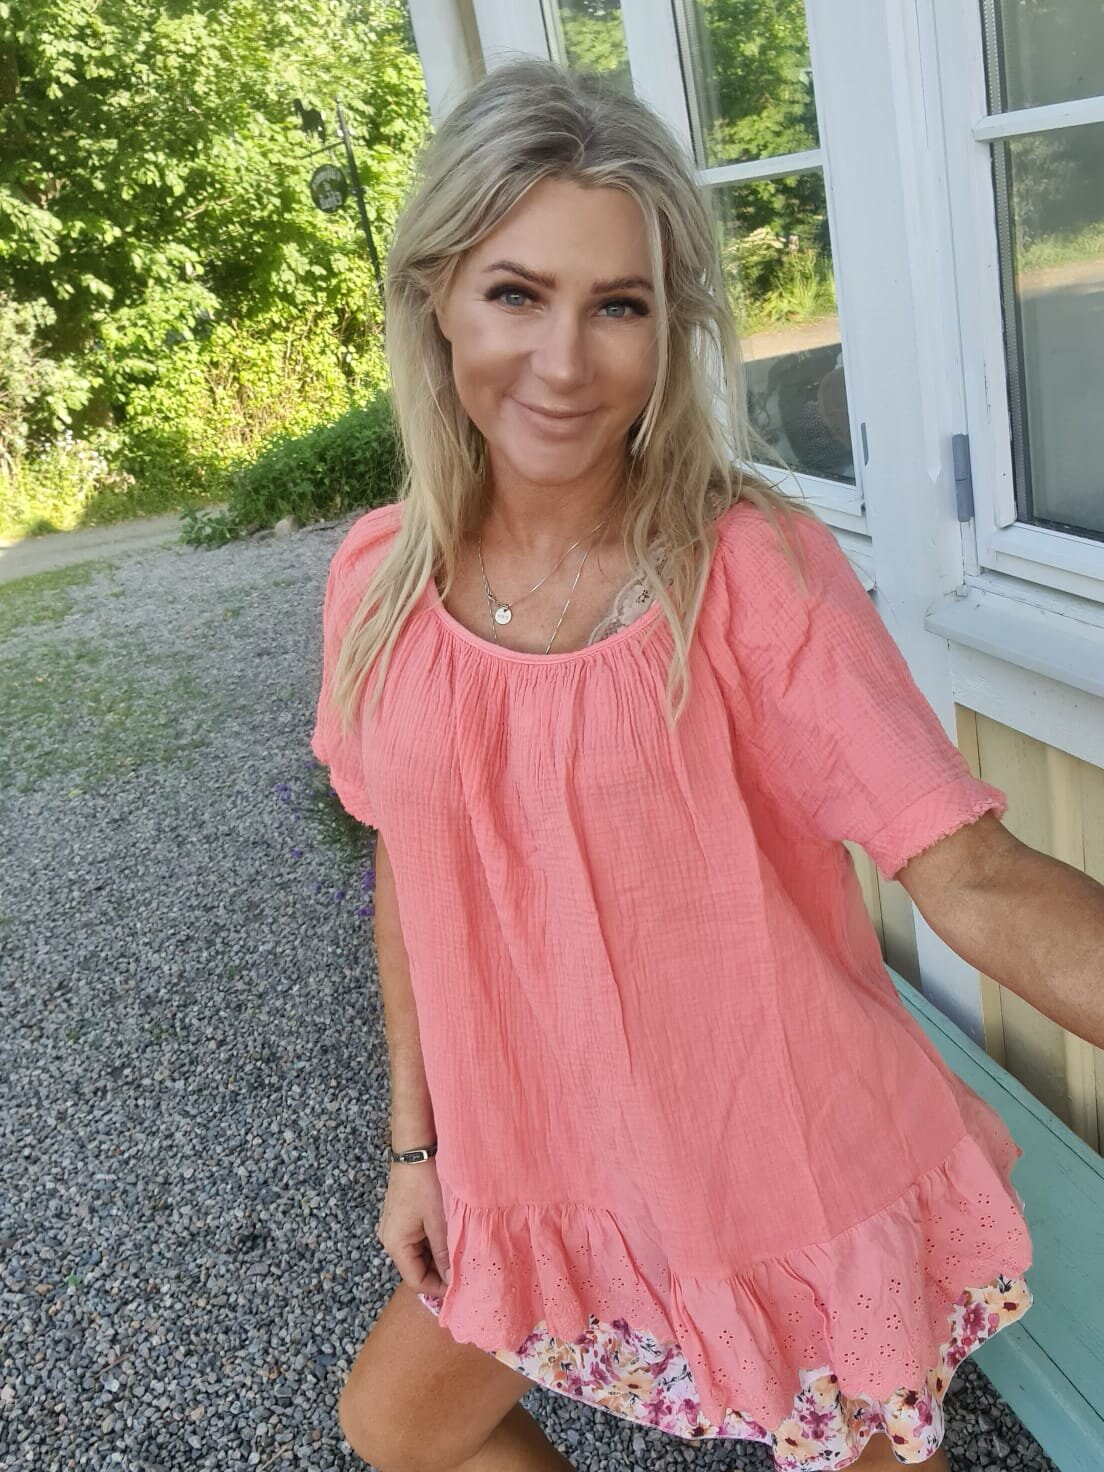 Christa top - Lace & Waffle - Peach